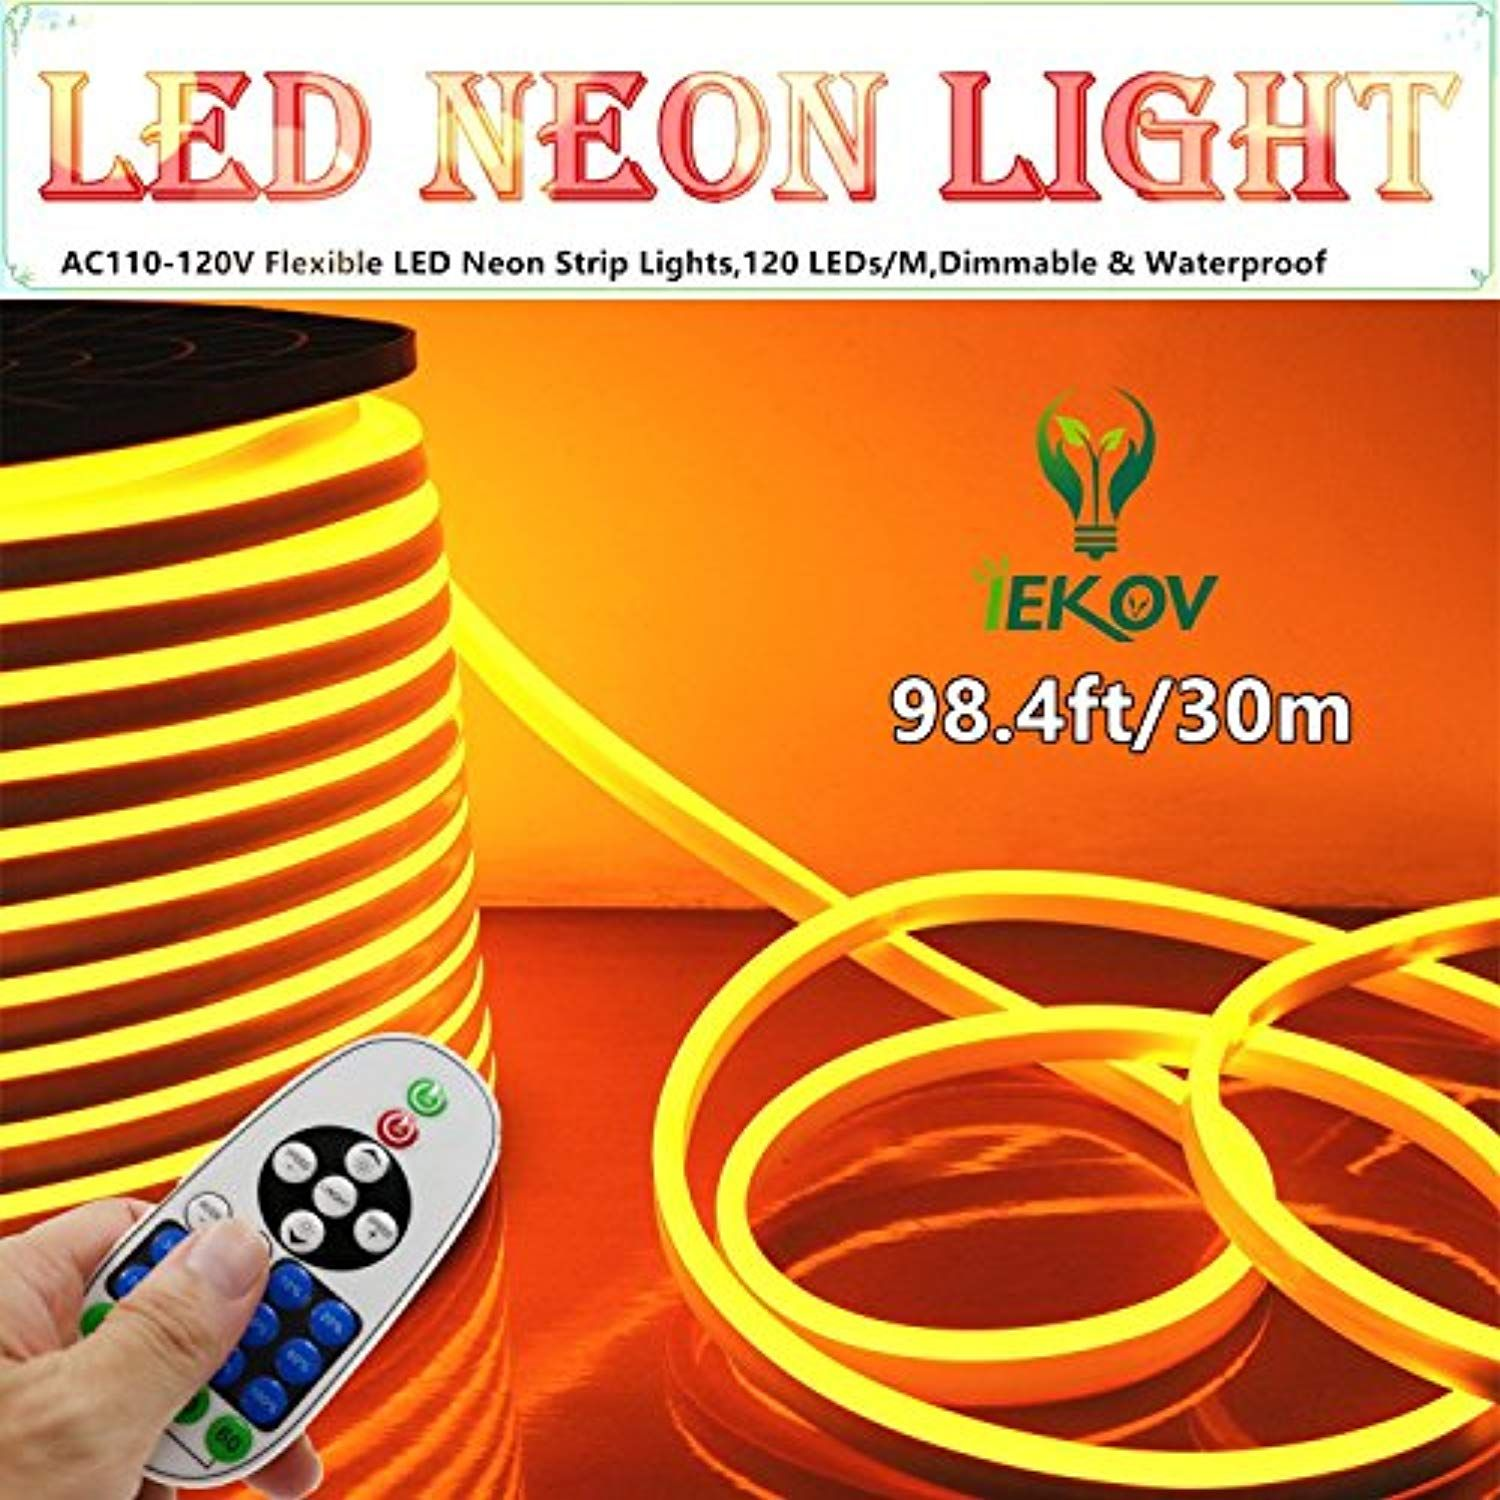 Iekov Led Neon Light Trade Ac 110 120v Flexible Led Neon Strip Lights 120 Leds M Dimmable Waterproof 2835 Led Neon Lighting Led Rope Lights Strip Lighting